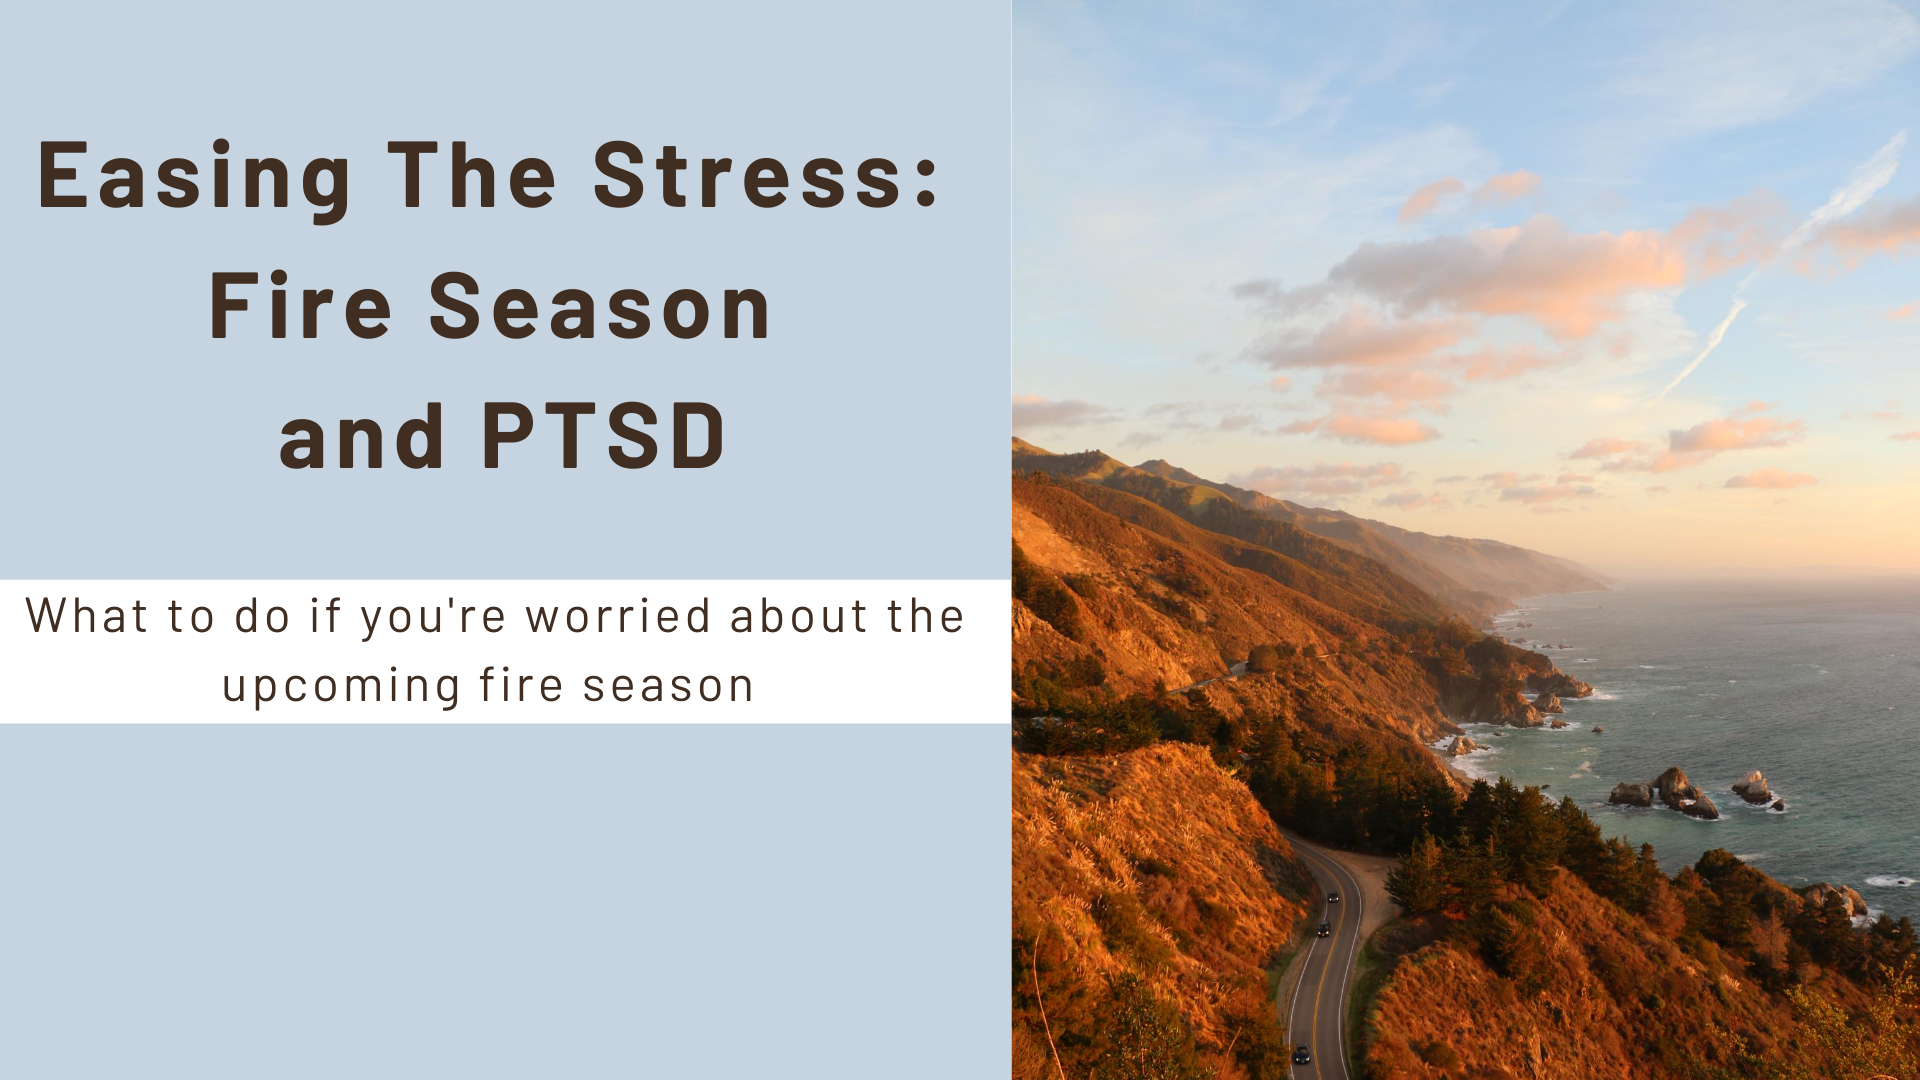 Easing The Stress: Fire Season and PTSD